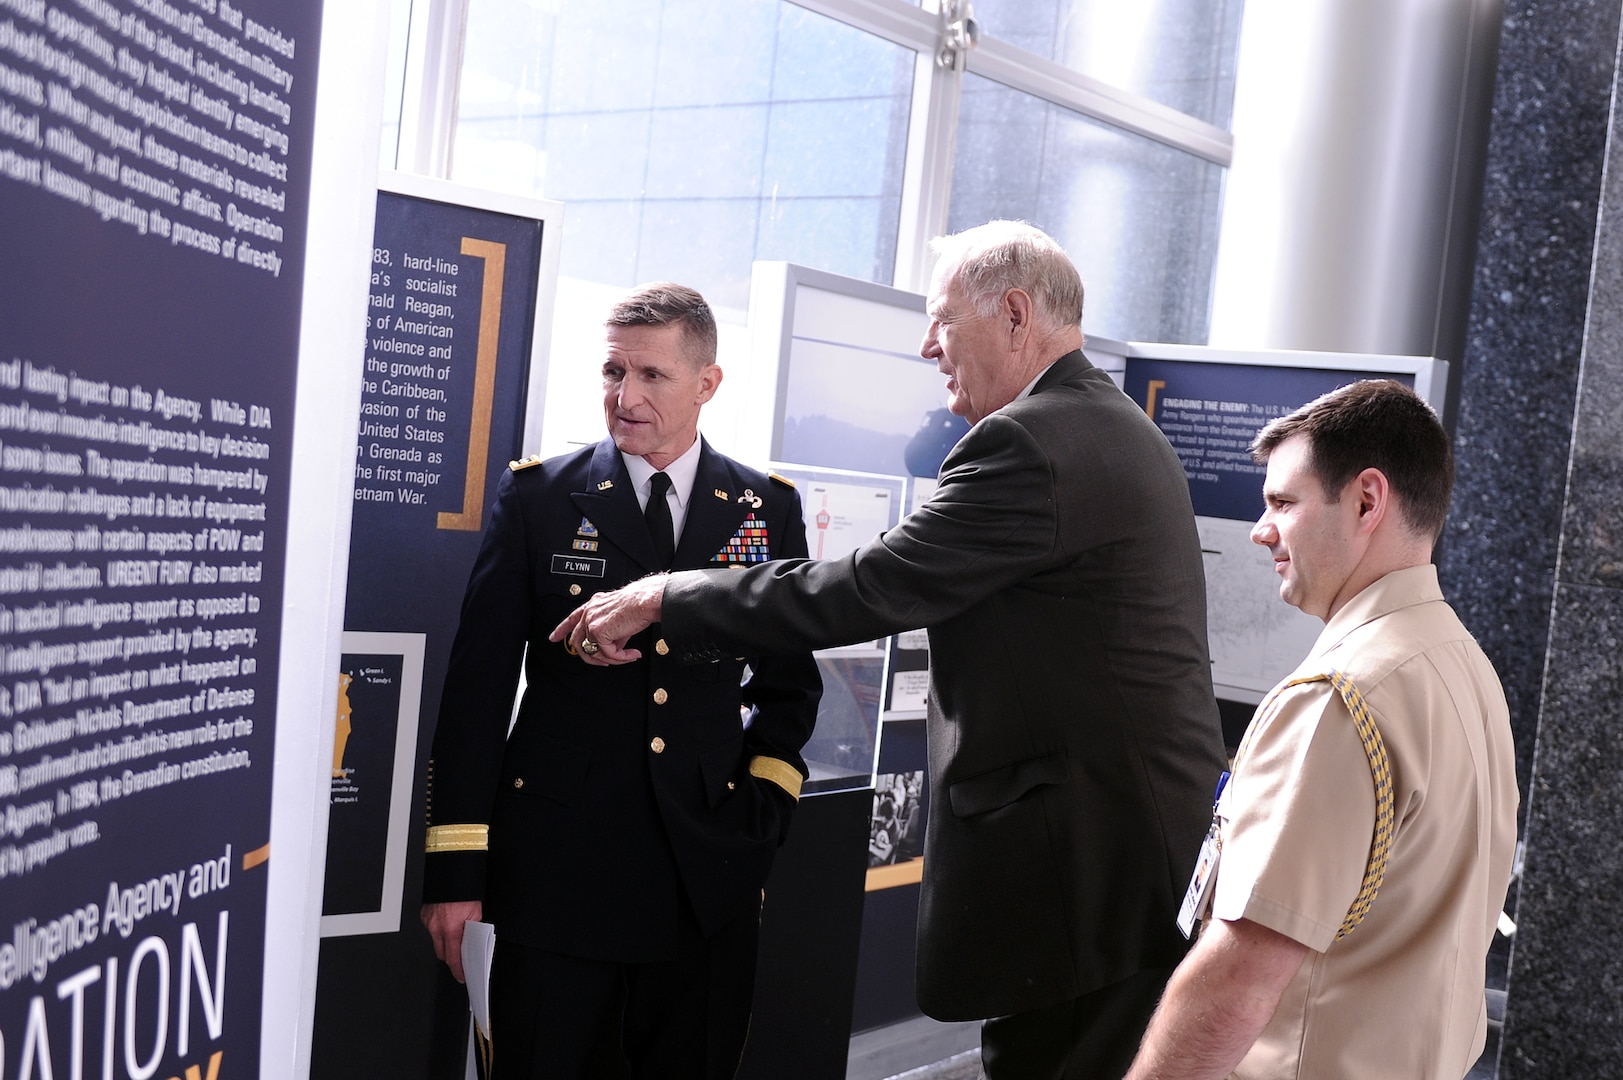 From left, current Director LTG Michael Flynn, former director LTG James Williams, and the director's executive officer discuss the Operation Urgent Fury display in the Missile Lobby after the event.